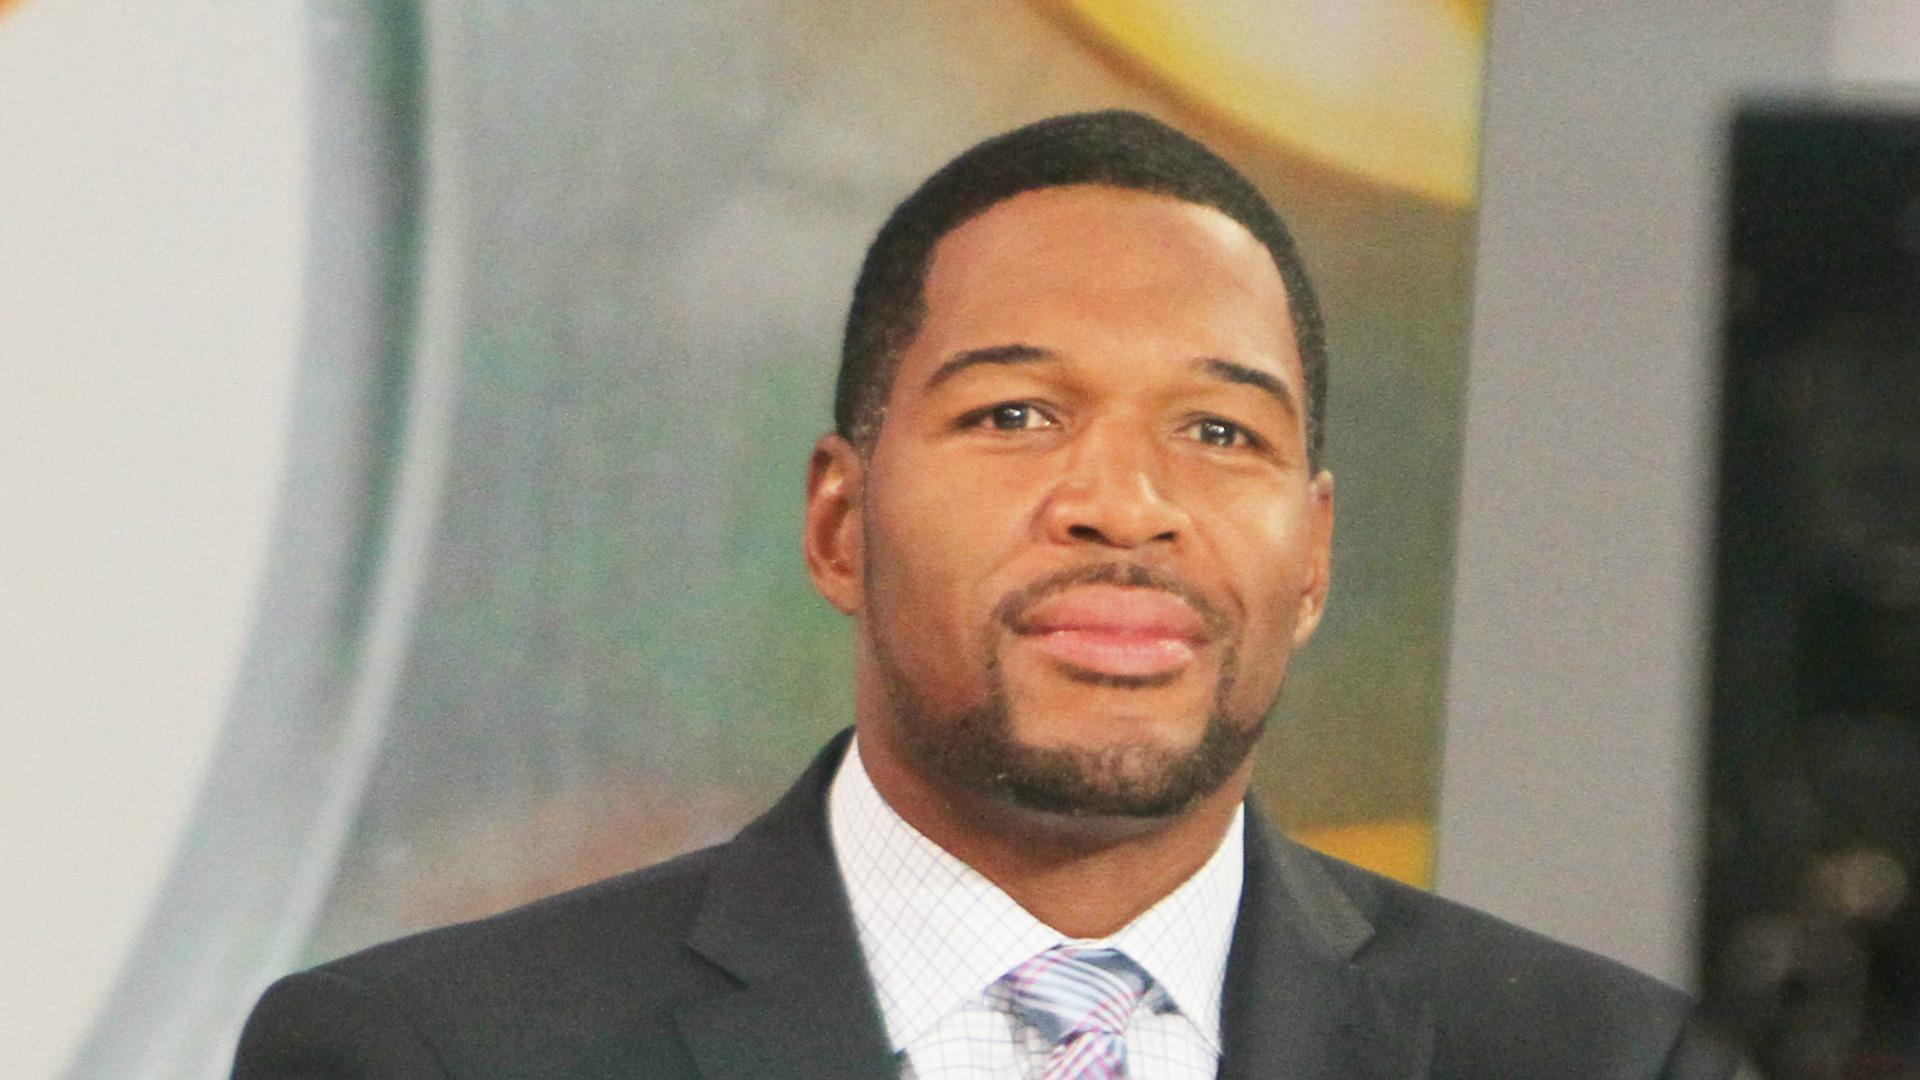 Michael Strahan reportedly strayed before breakup